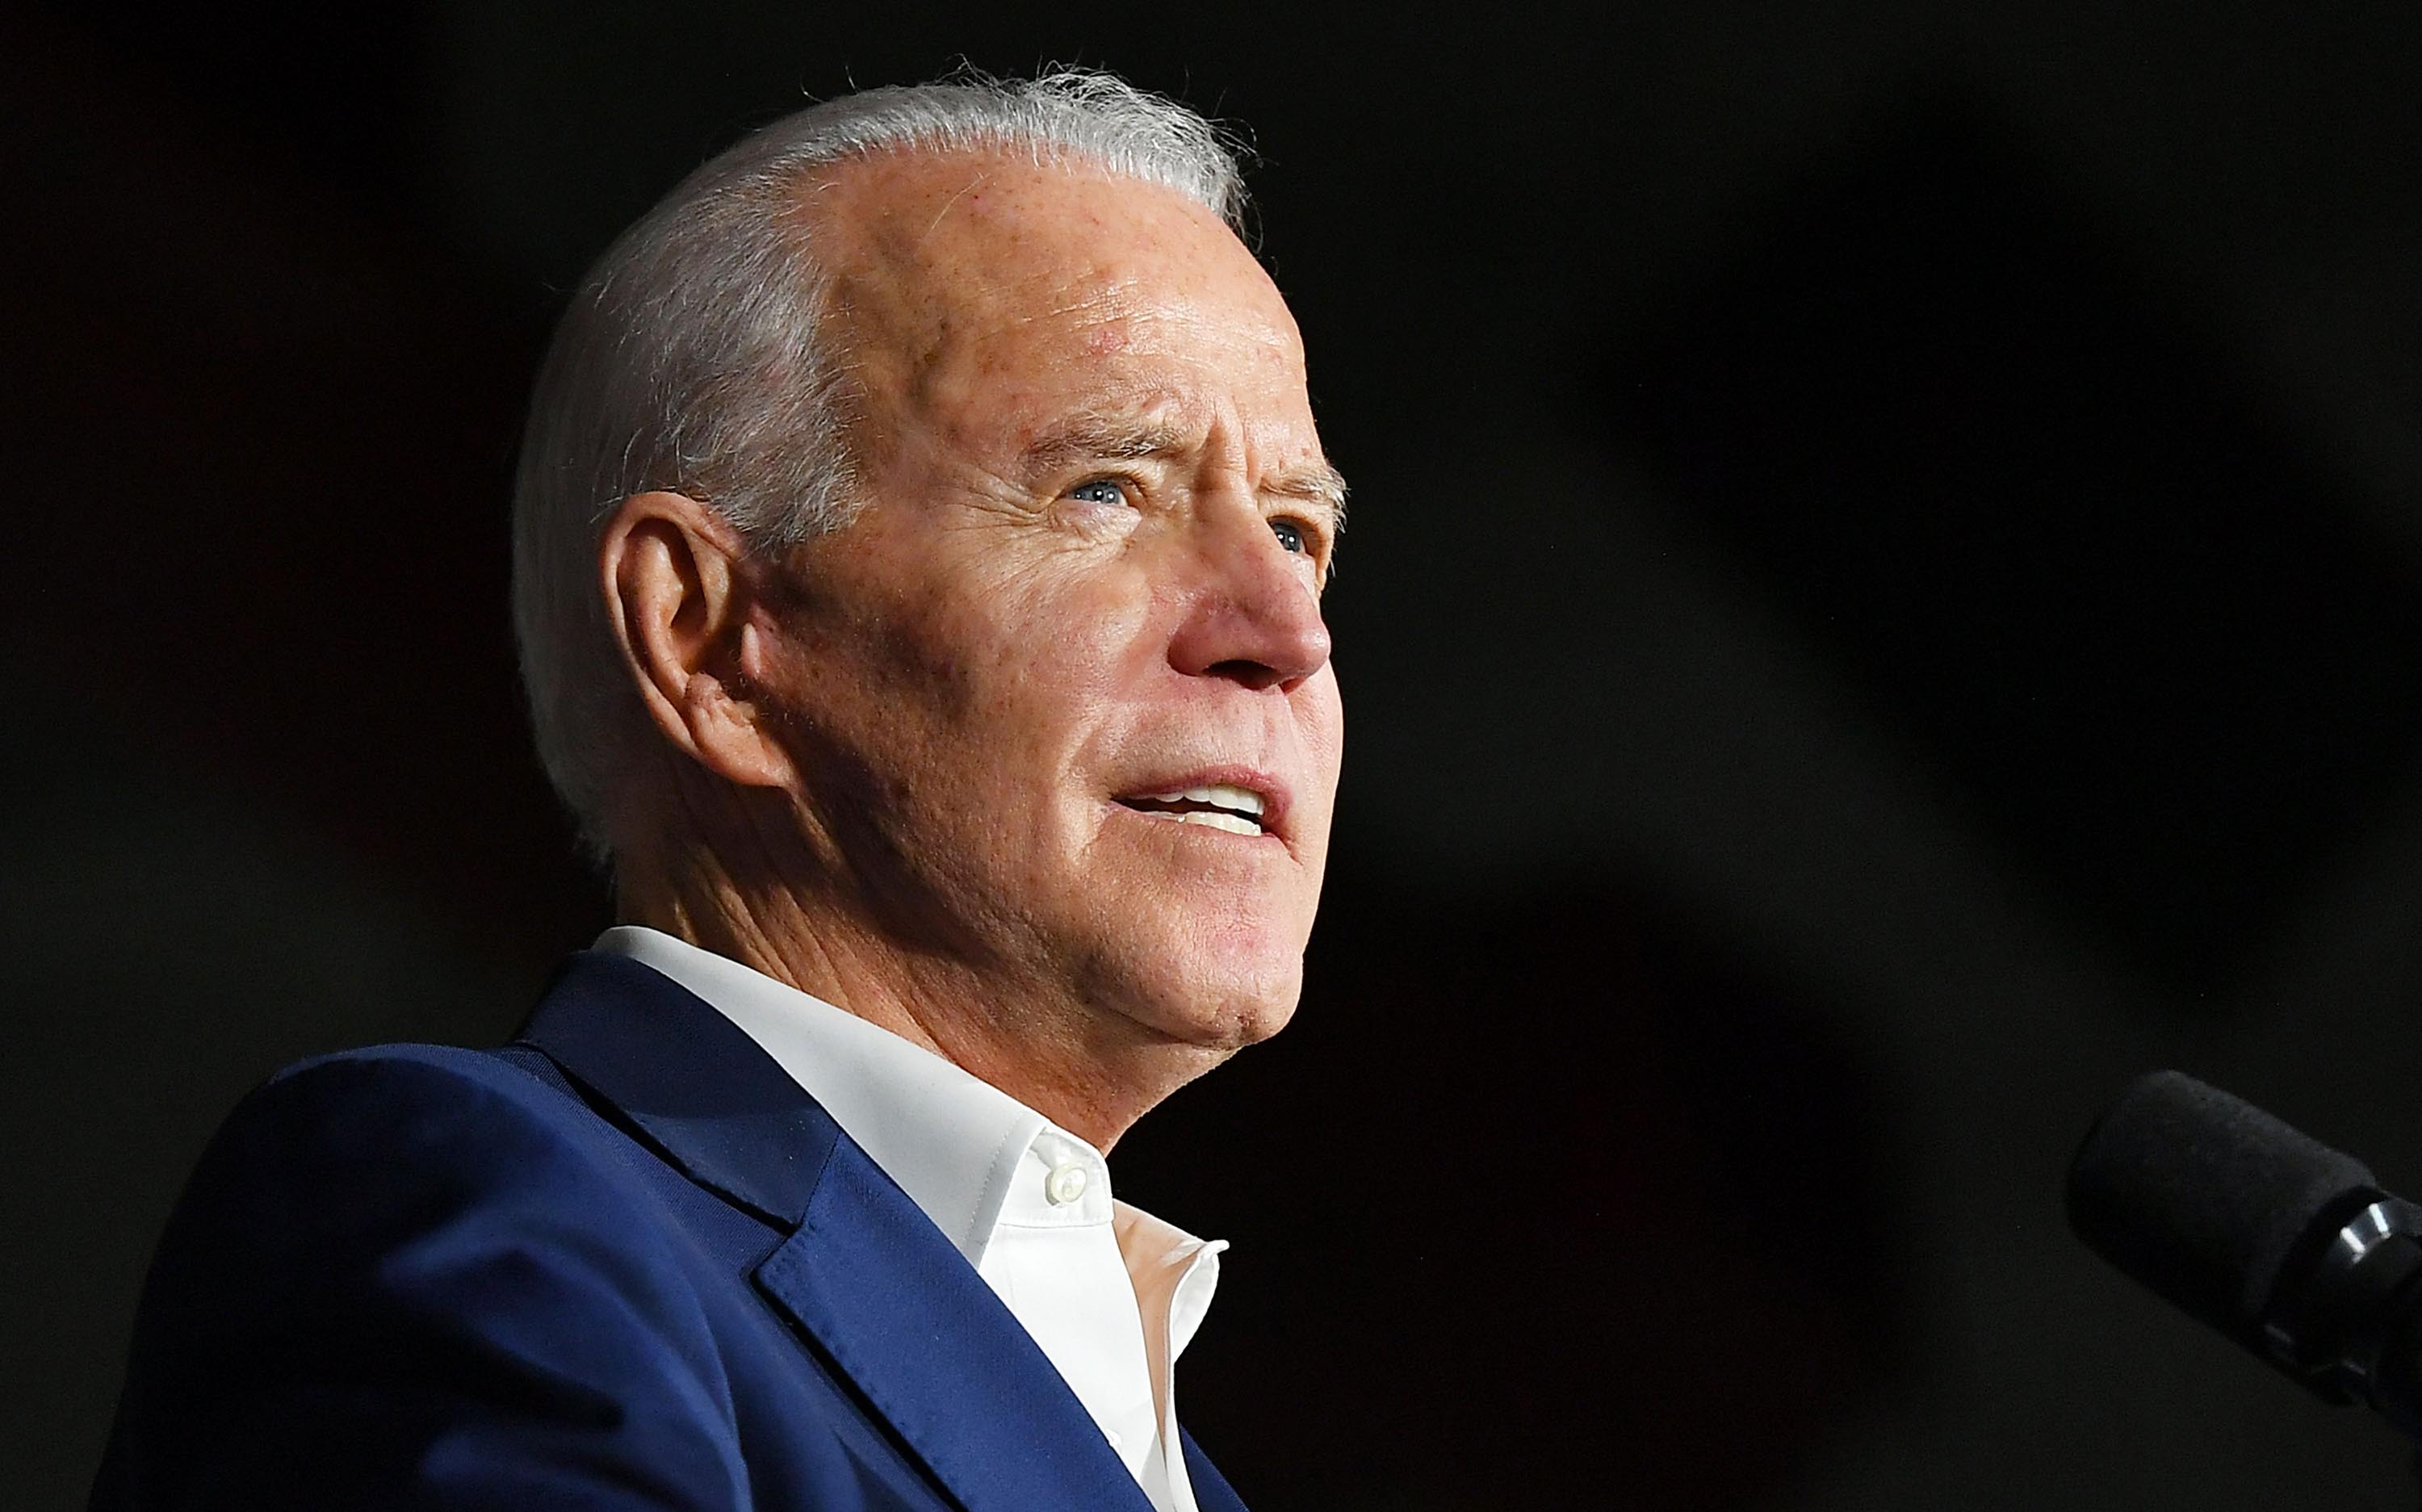 Joe Biden says he informed Bernie Sanders he will begin the VP vetting process